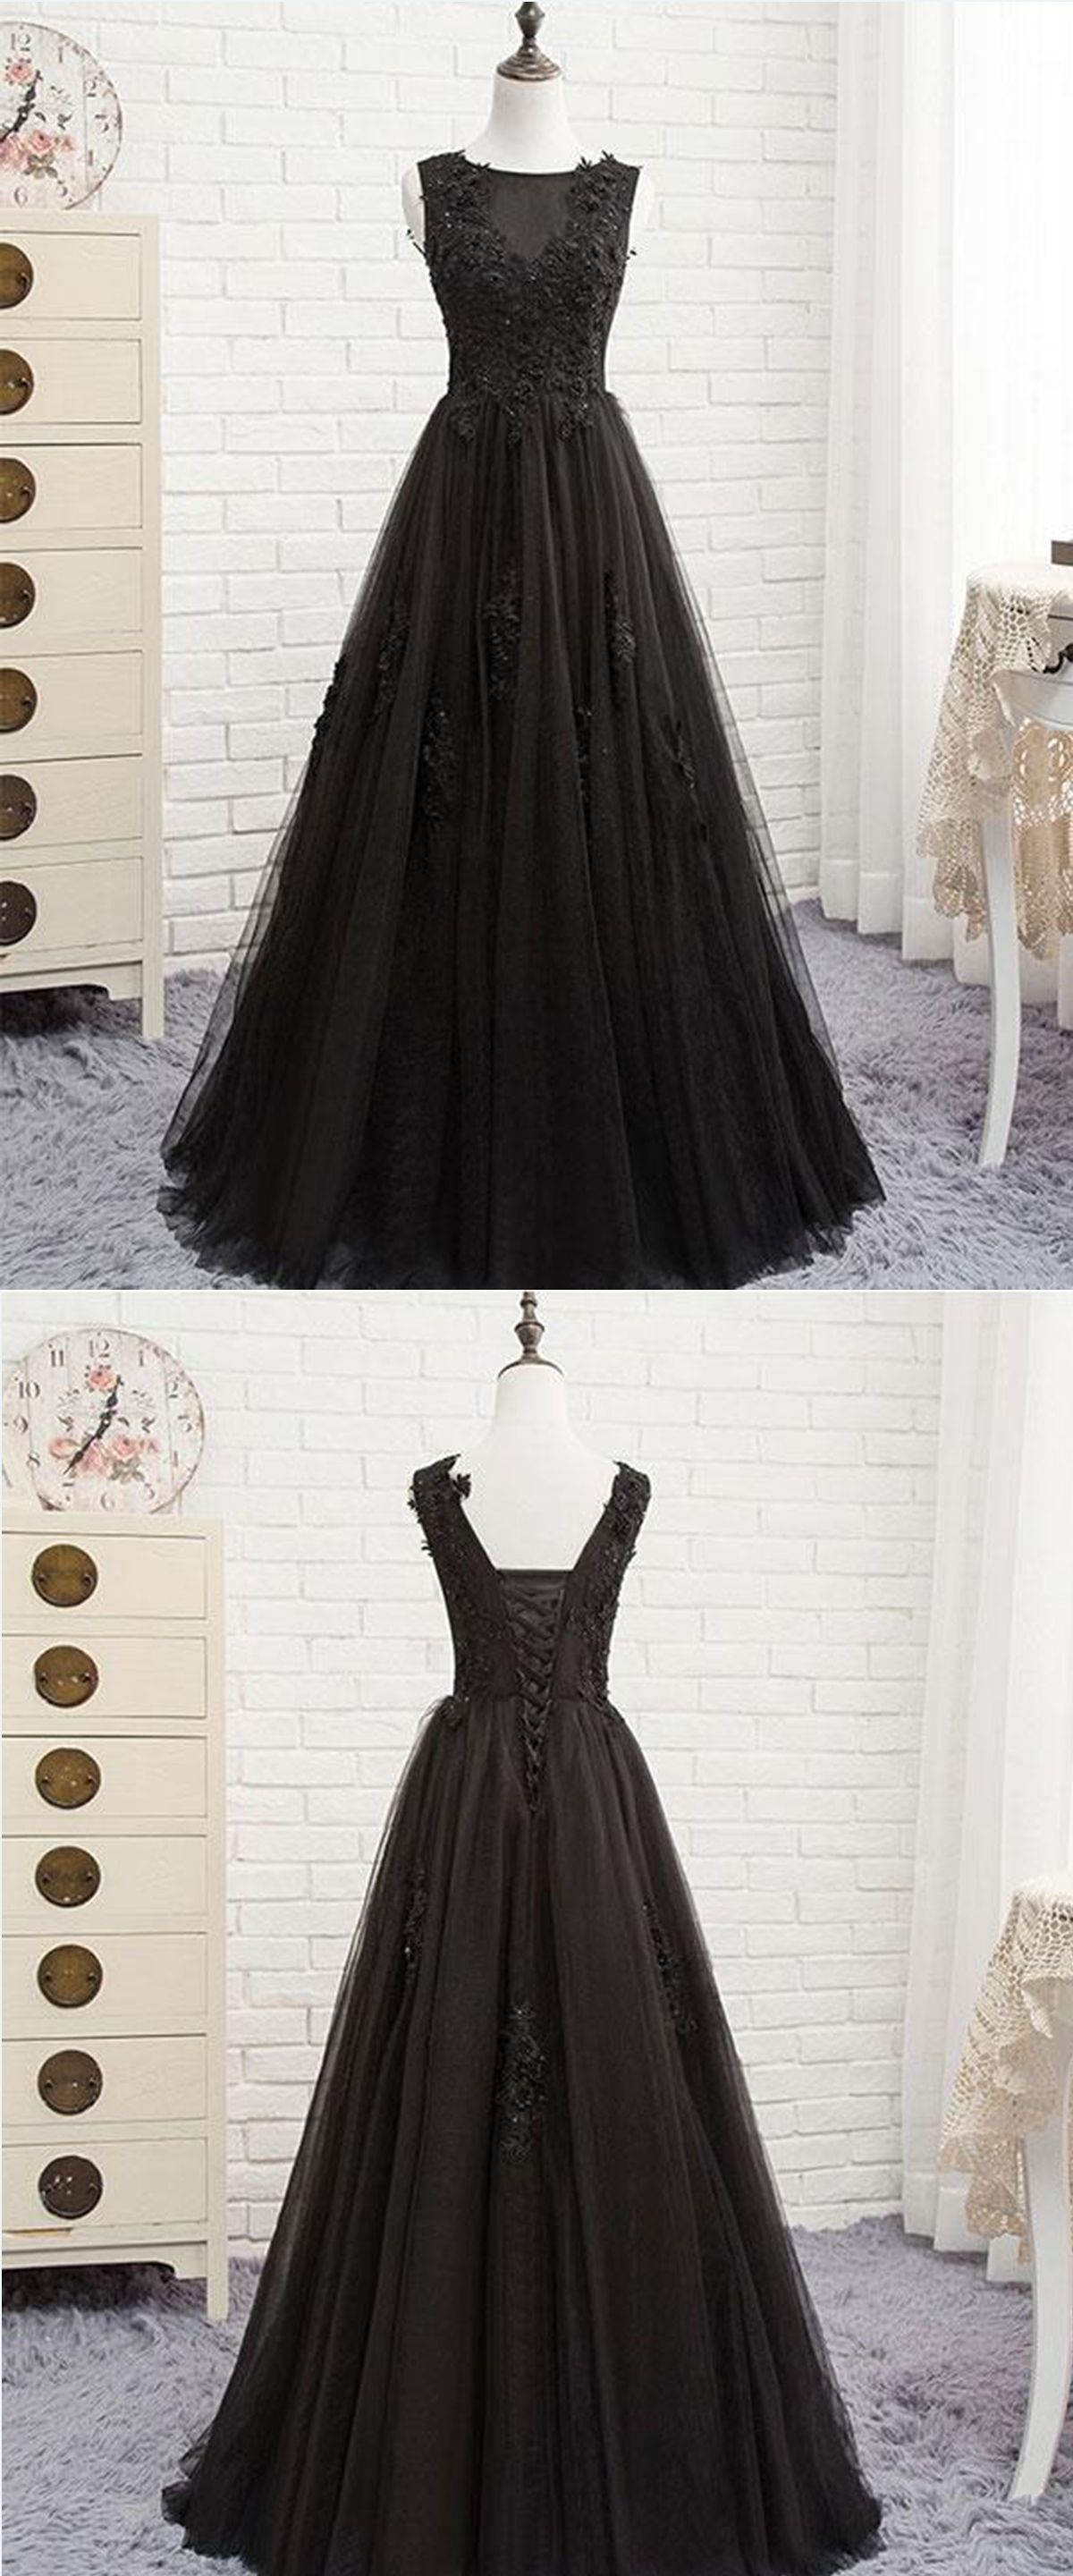 Unique black tulle scoop neck long halter prom dress long lace